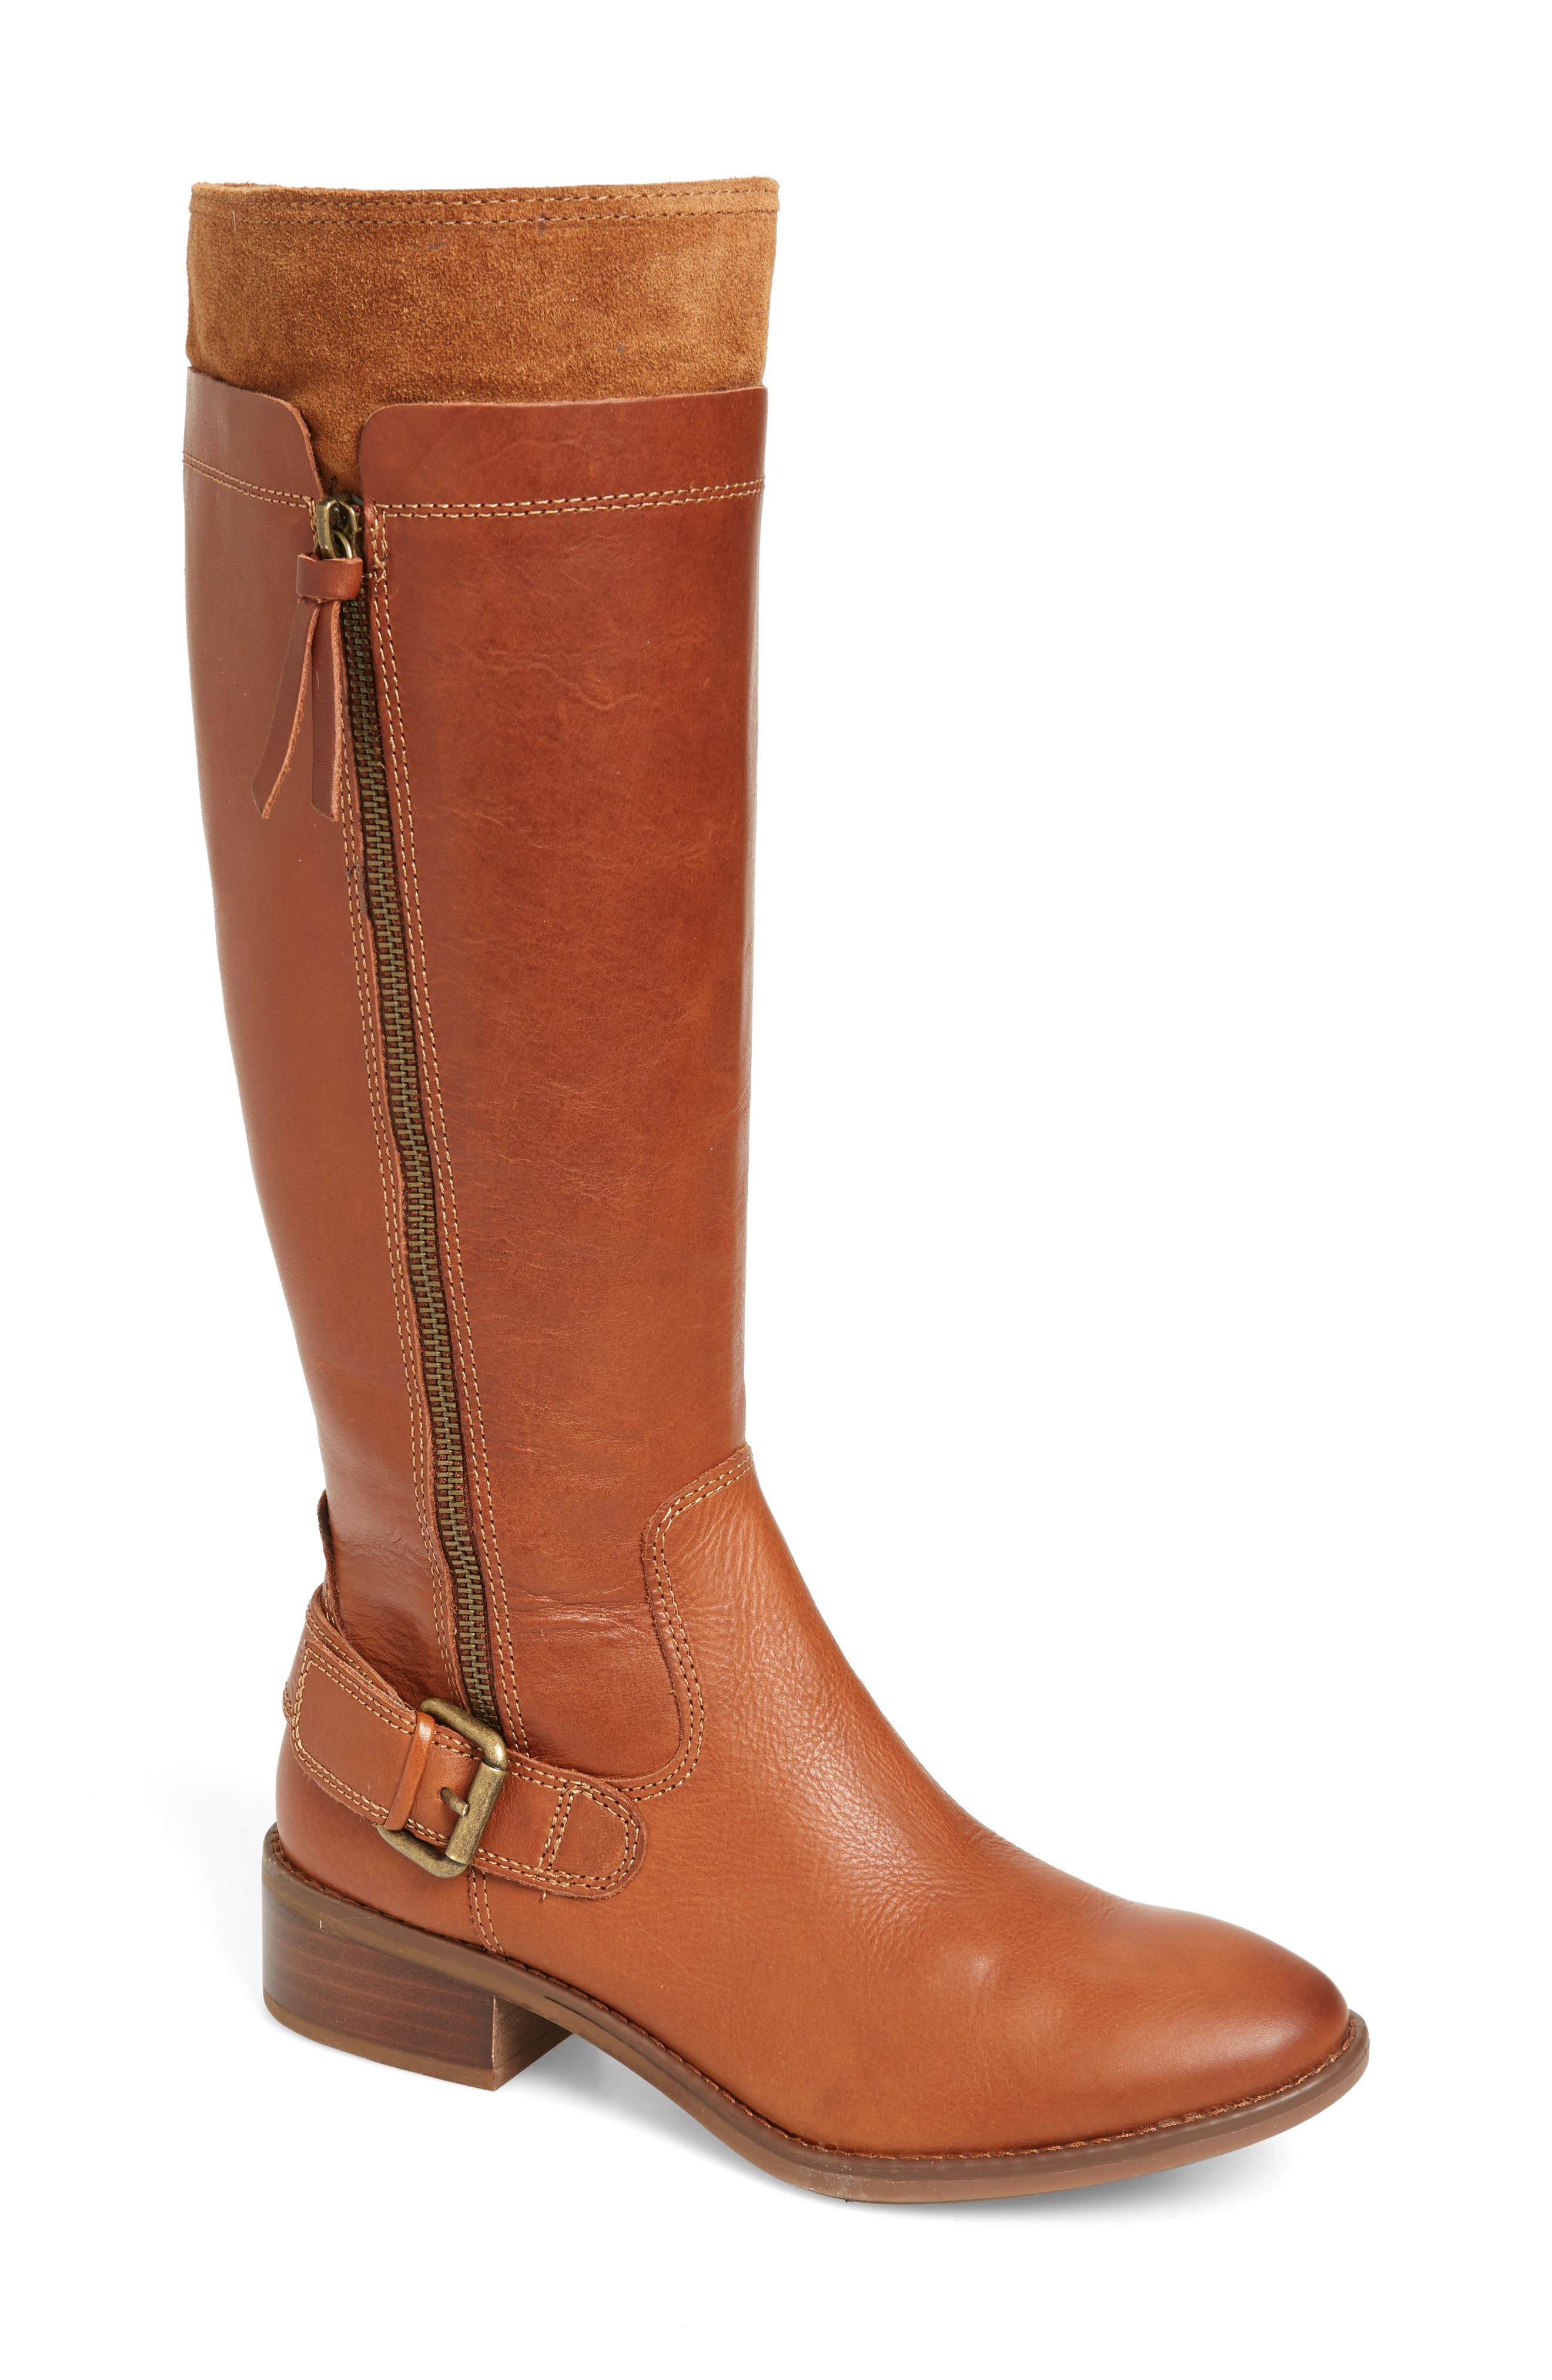 Suede trim adds a hint of mixed-media appeal to a burnished leather boot grounded by a cushioned footbed. Style Name: Comfortiva Corozal Knee High Boot (Women) (Wide Calf). Style Number: 5897240. Available in stores.